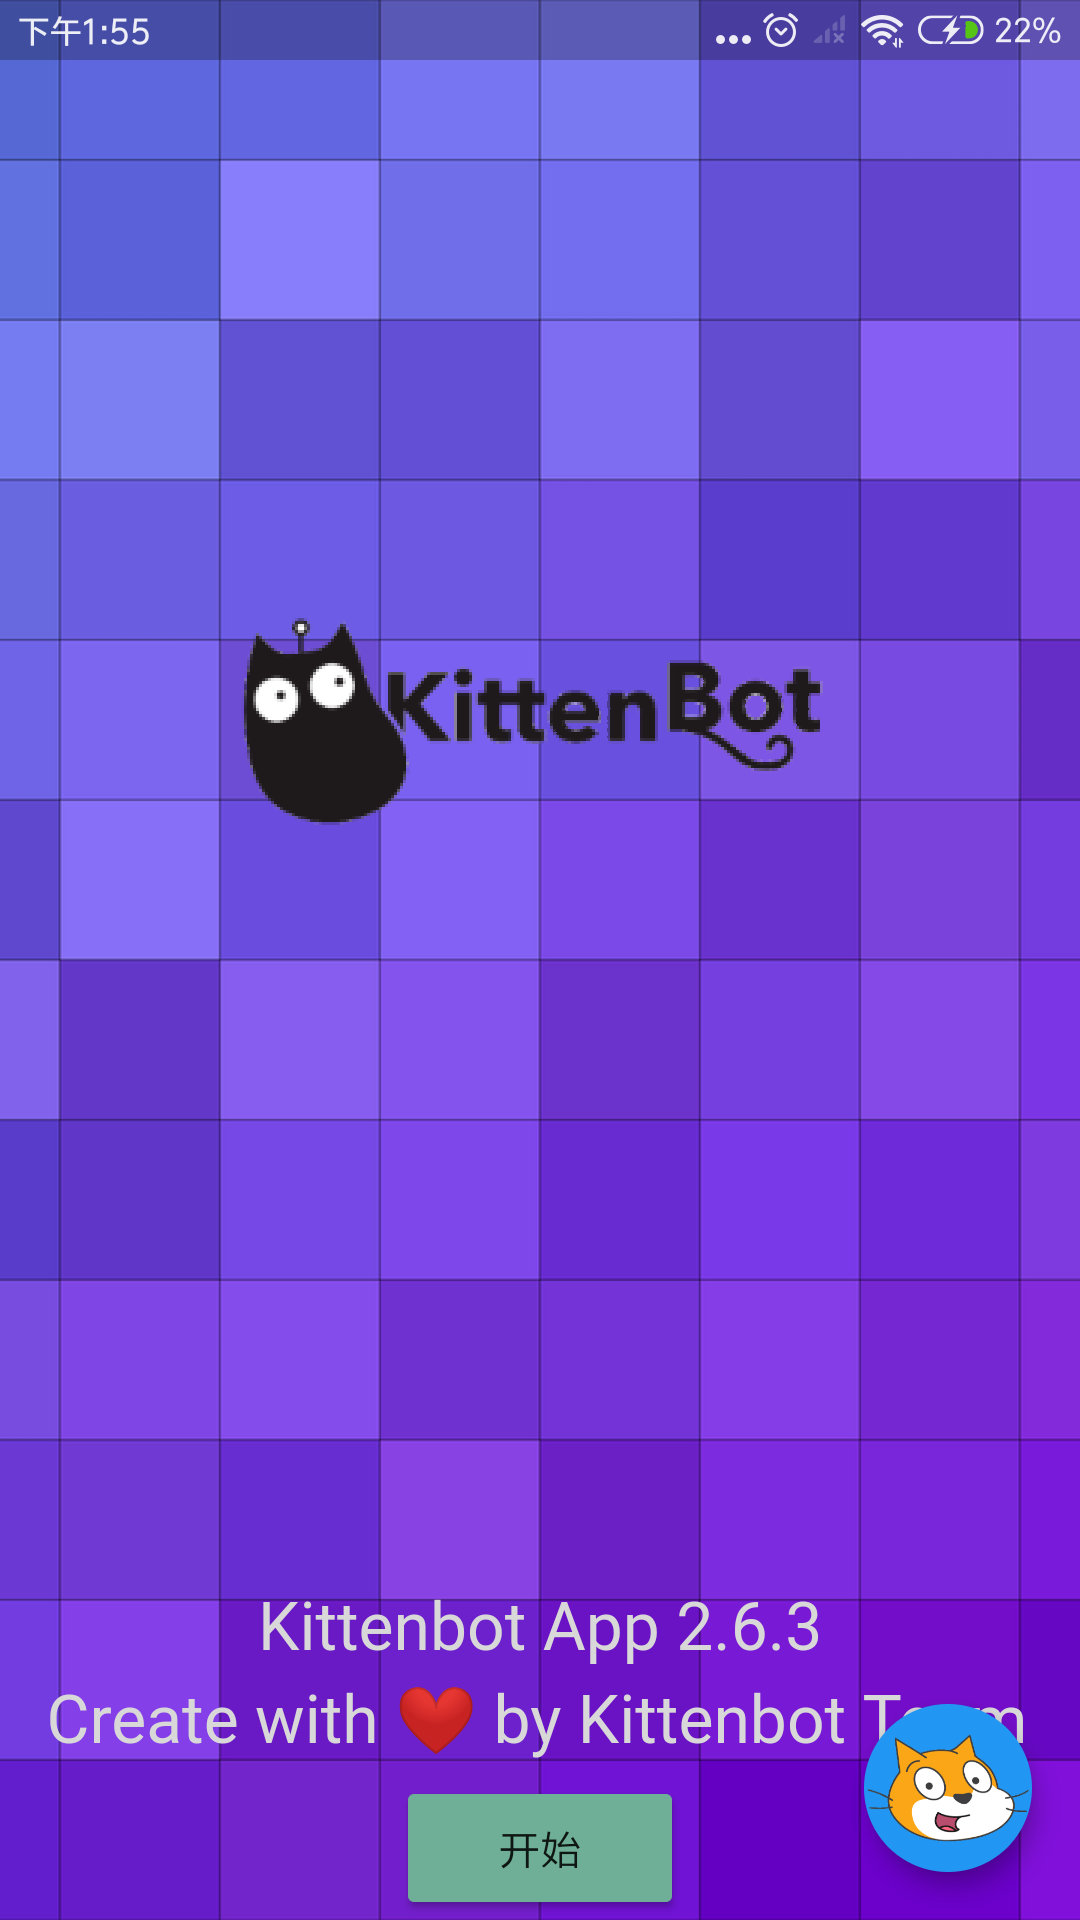 appandroid-Screenshot_2019-06-10-13-55-55-283_cc.kittenbot.k